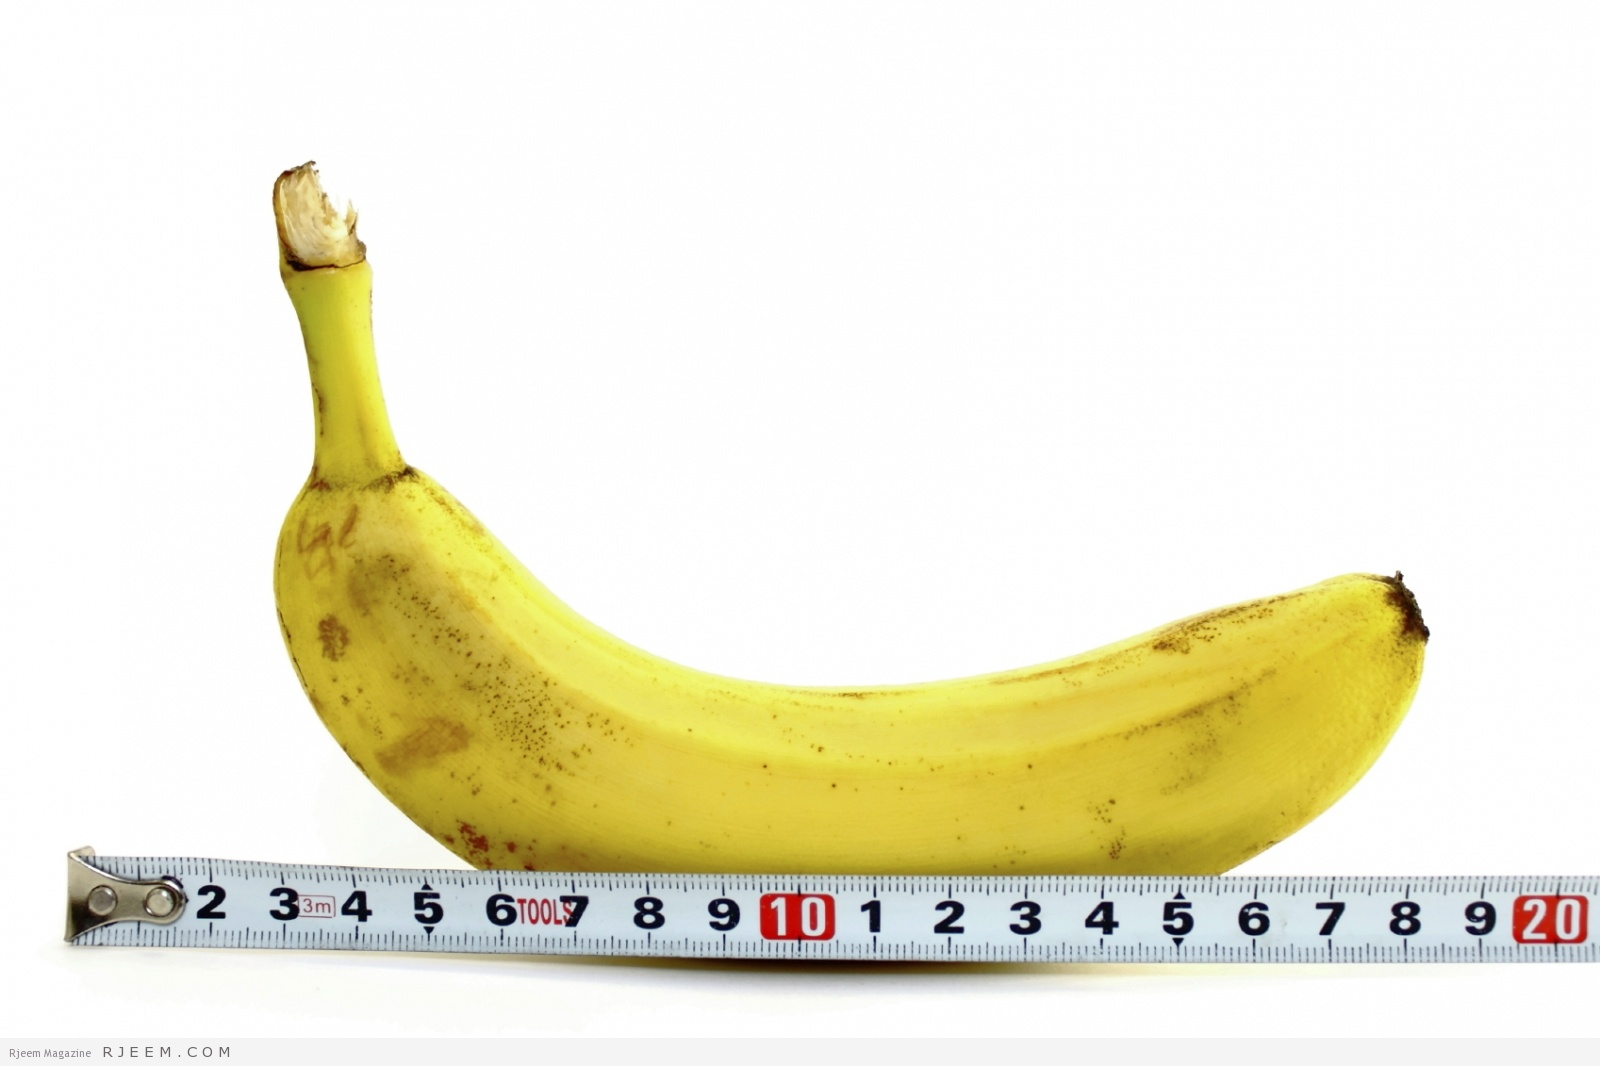 d.ibtimes.co .ukpenis size banana picture b278ff7d3086e125d7f99598adfd281cae8046ab